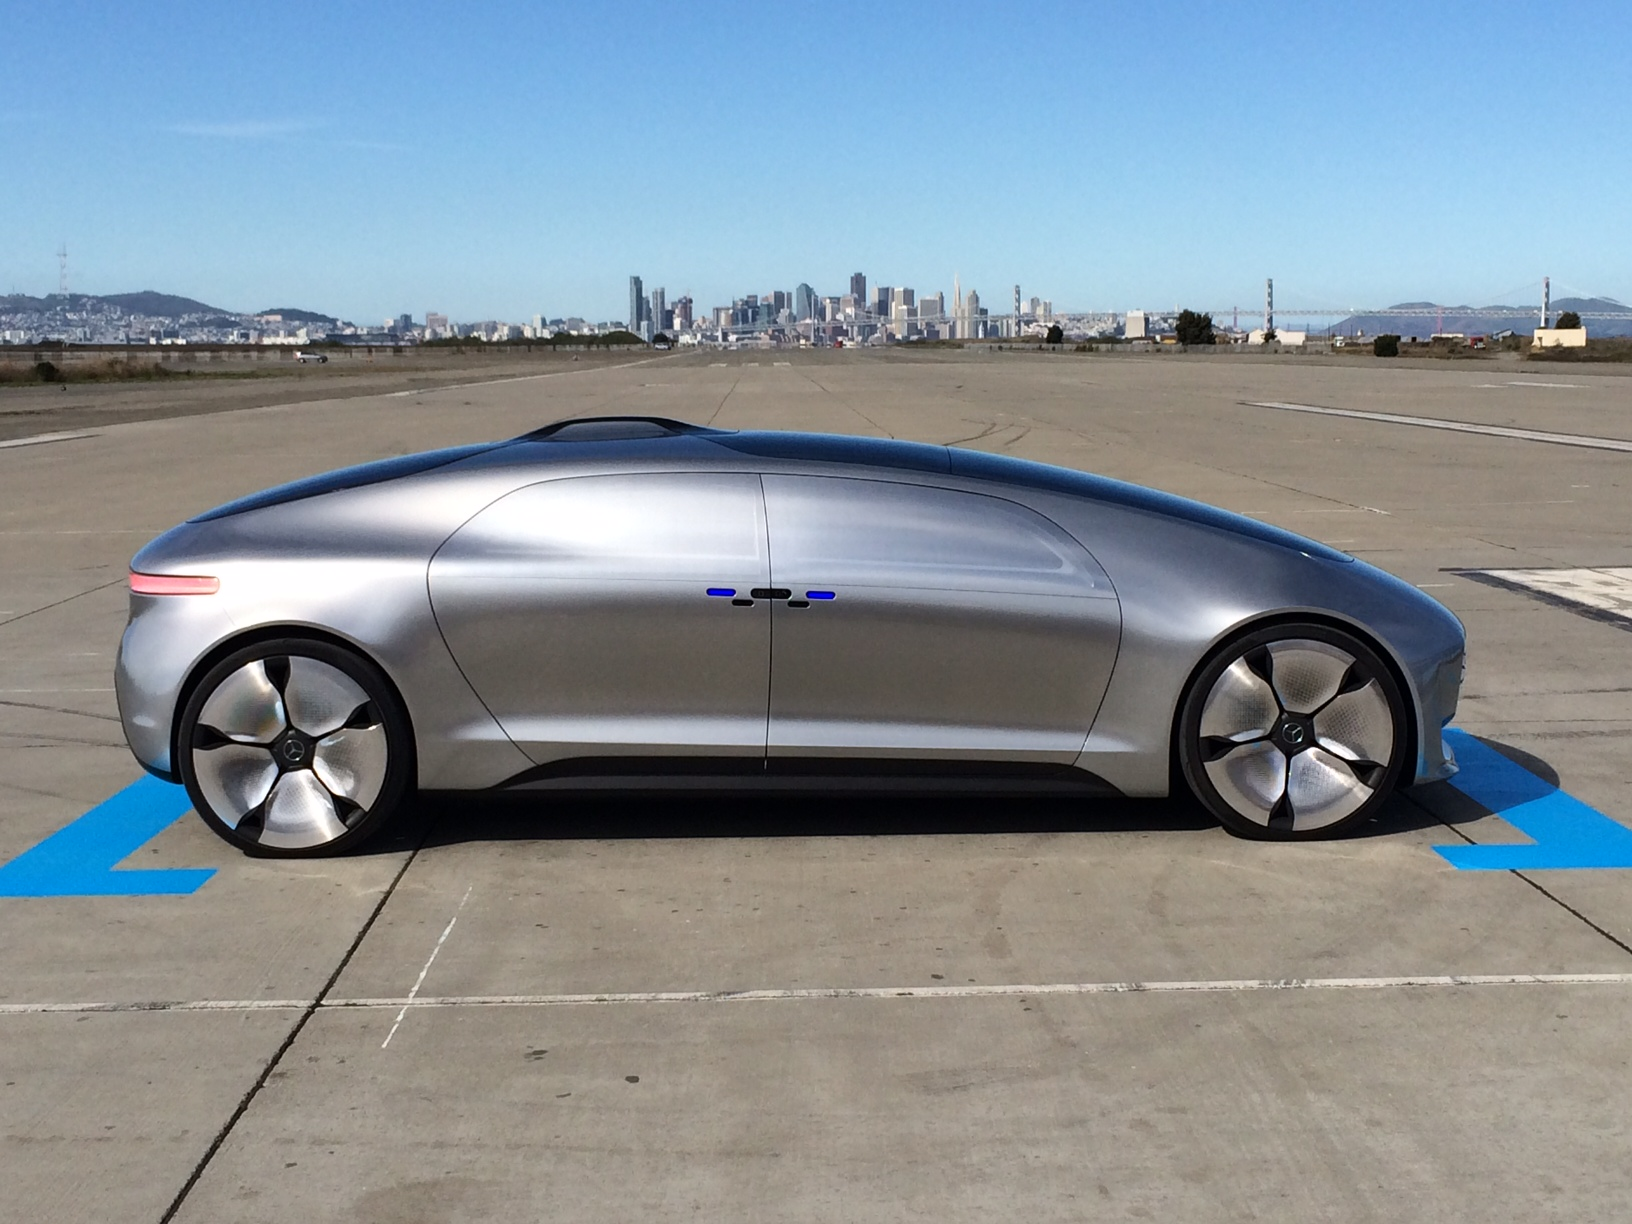 Mercedez-Benz F 105 driverless car